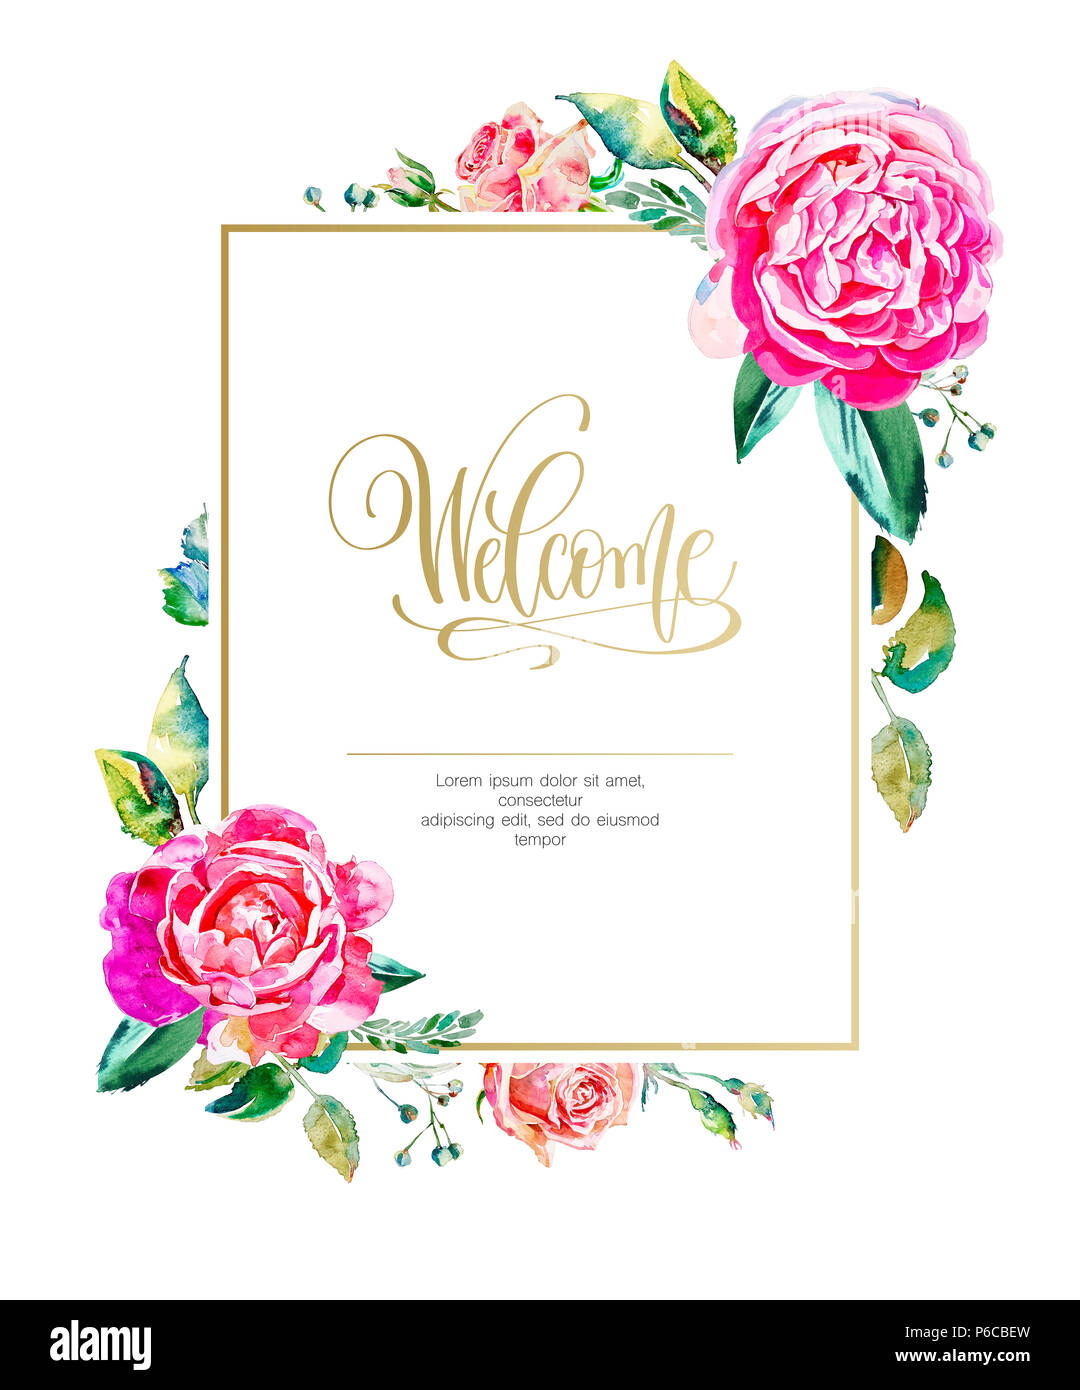 golden frame with watercolor handmade pink roses and hand lettering